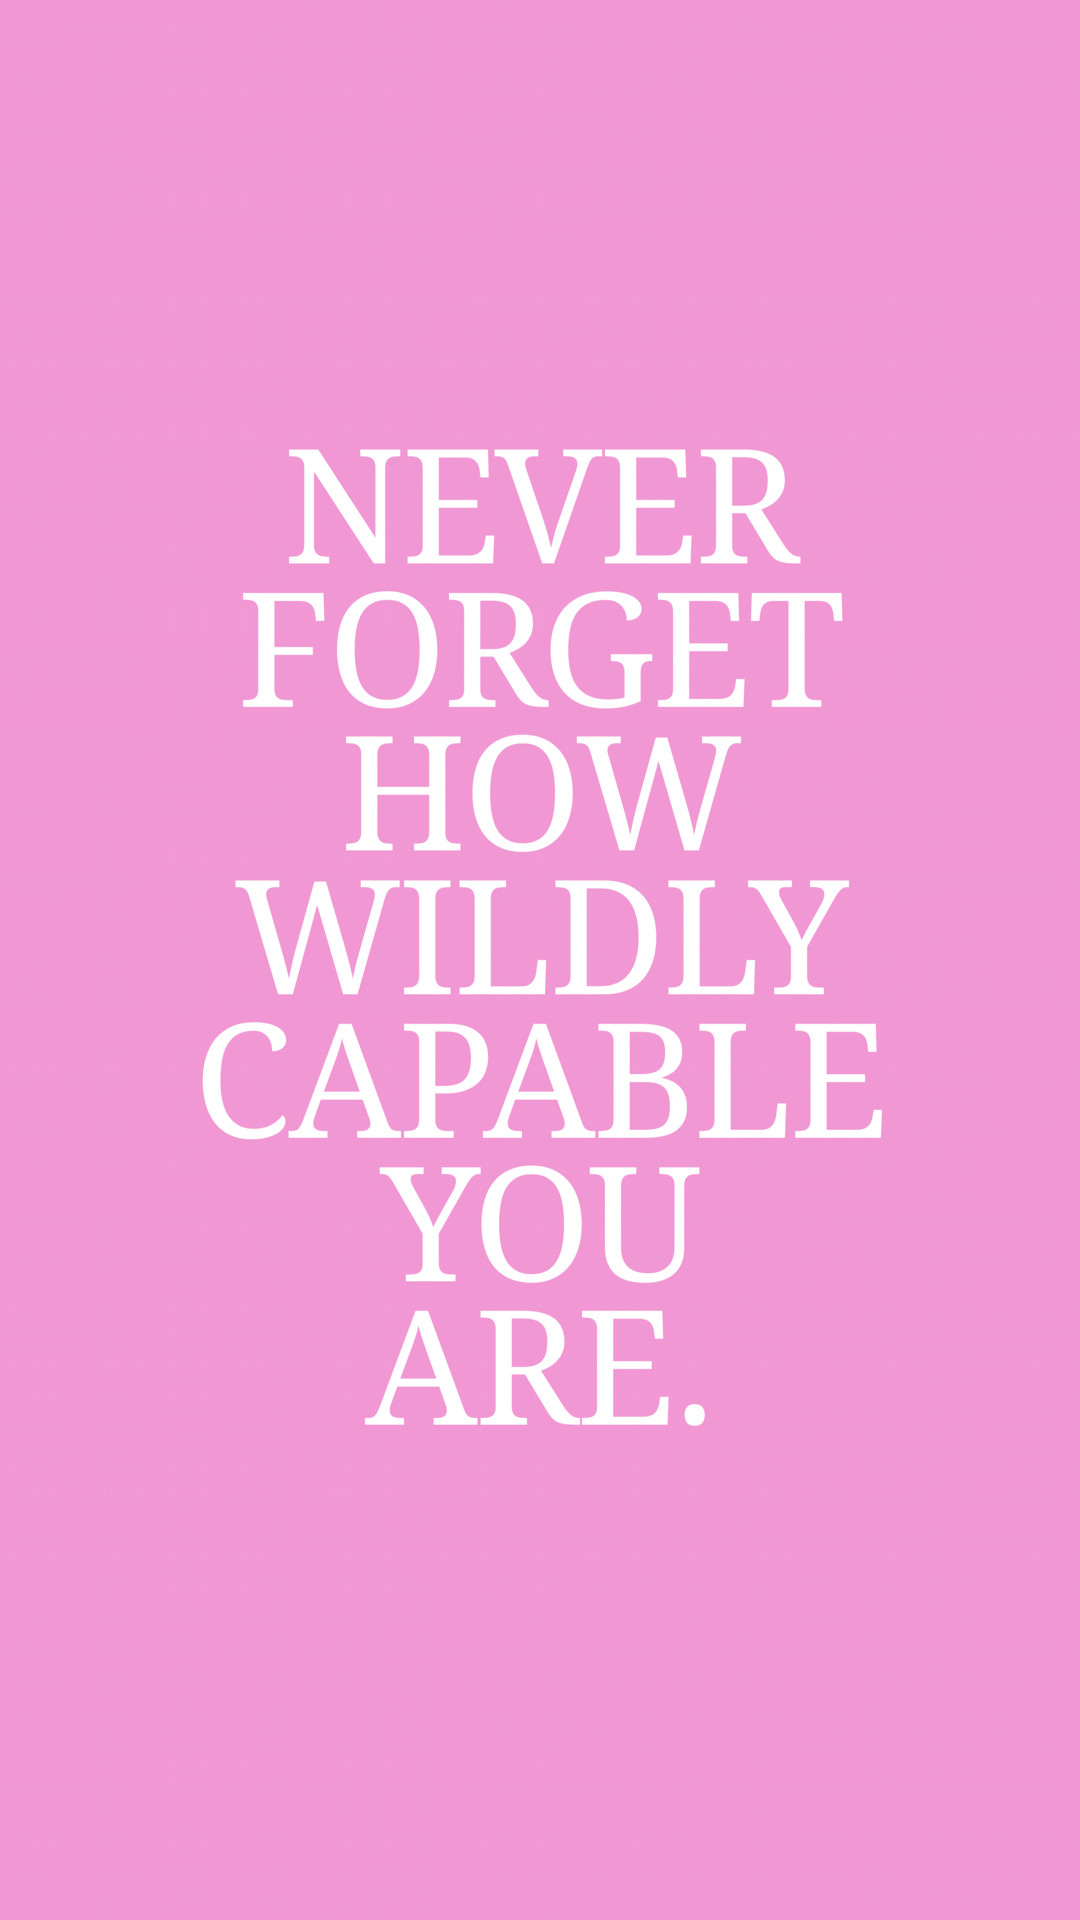 Inspirational Quotes For Women  Inspirational quotes believe in yourself quotes